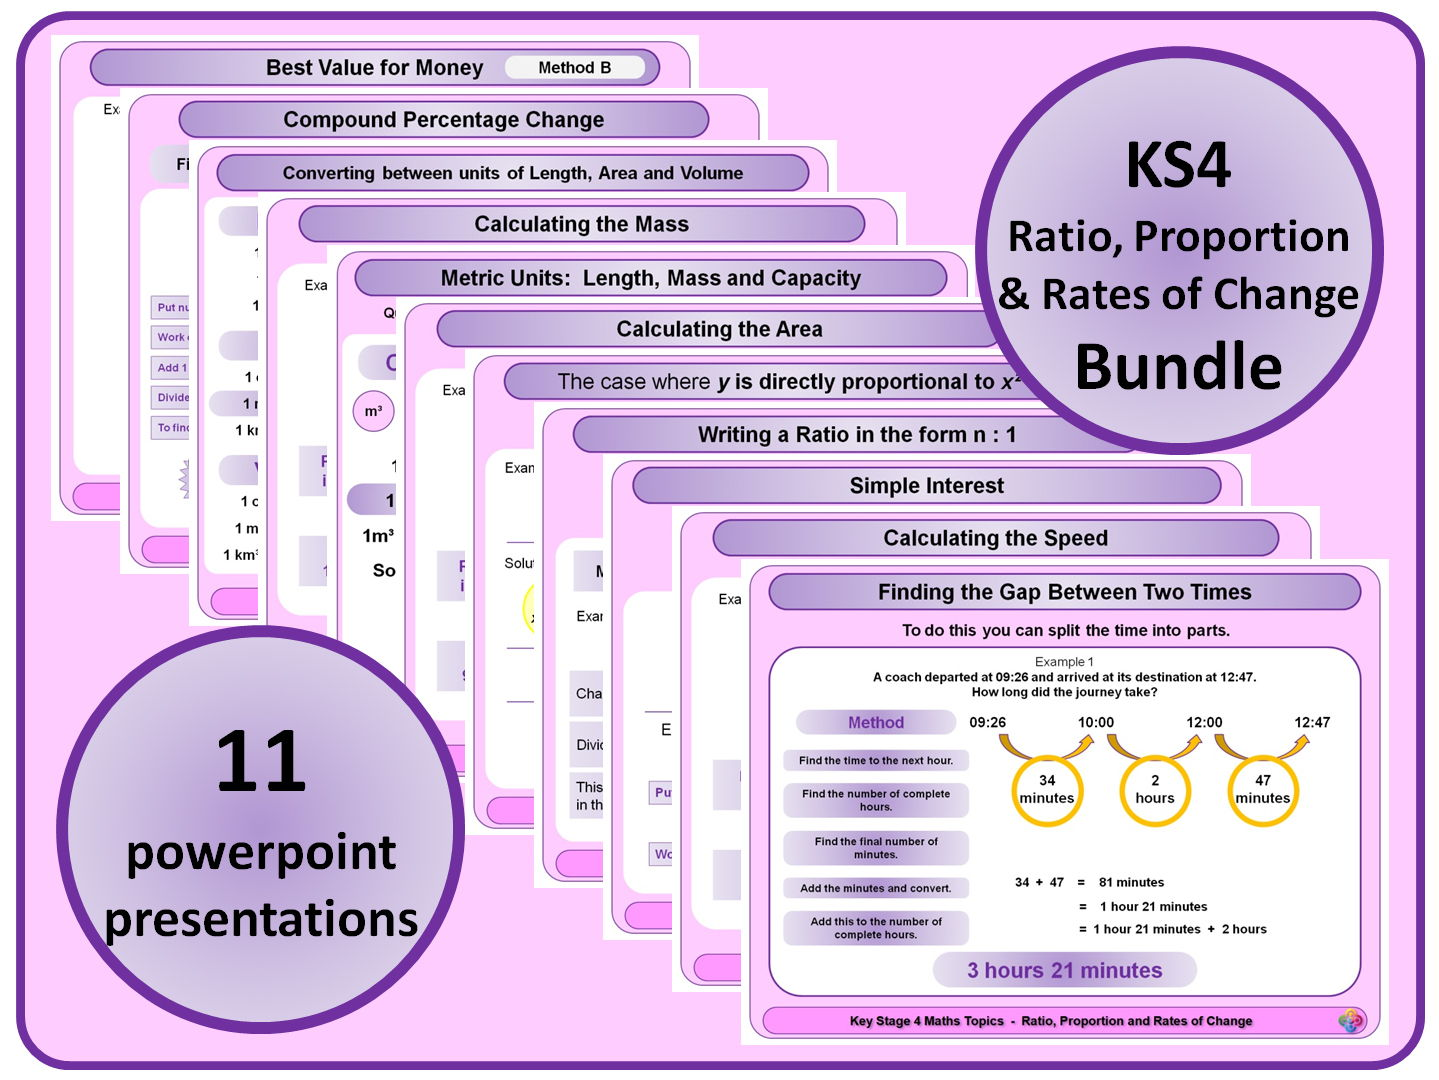 Ks4 Ratio Proportion Amp Rates Of Change Bundle